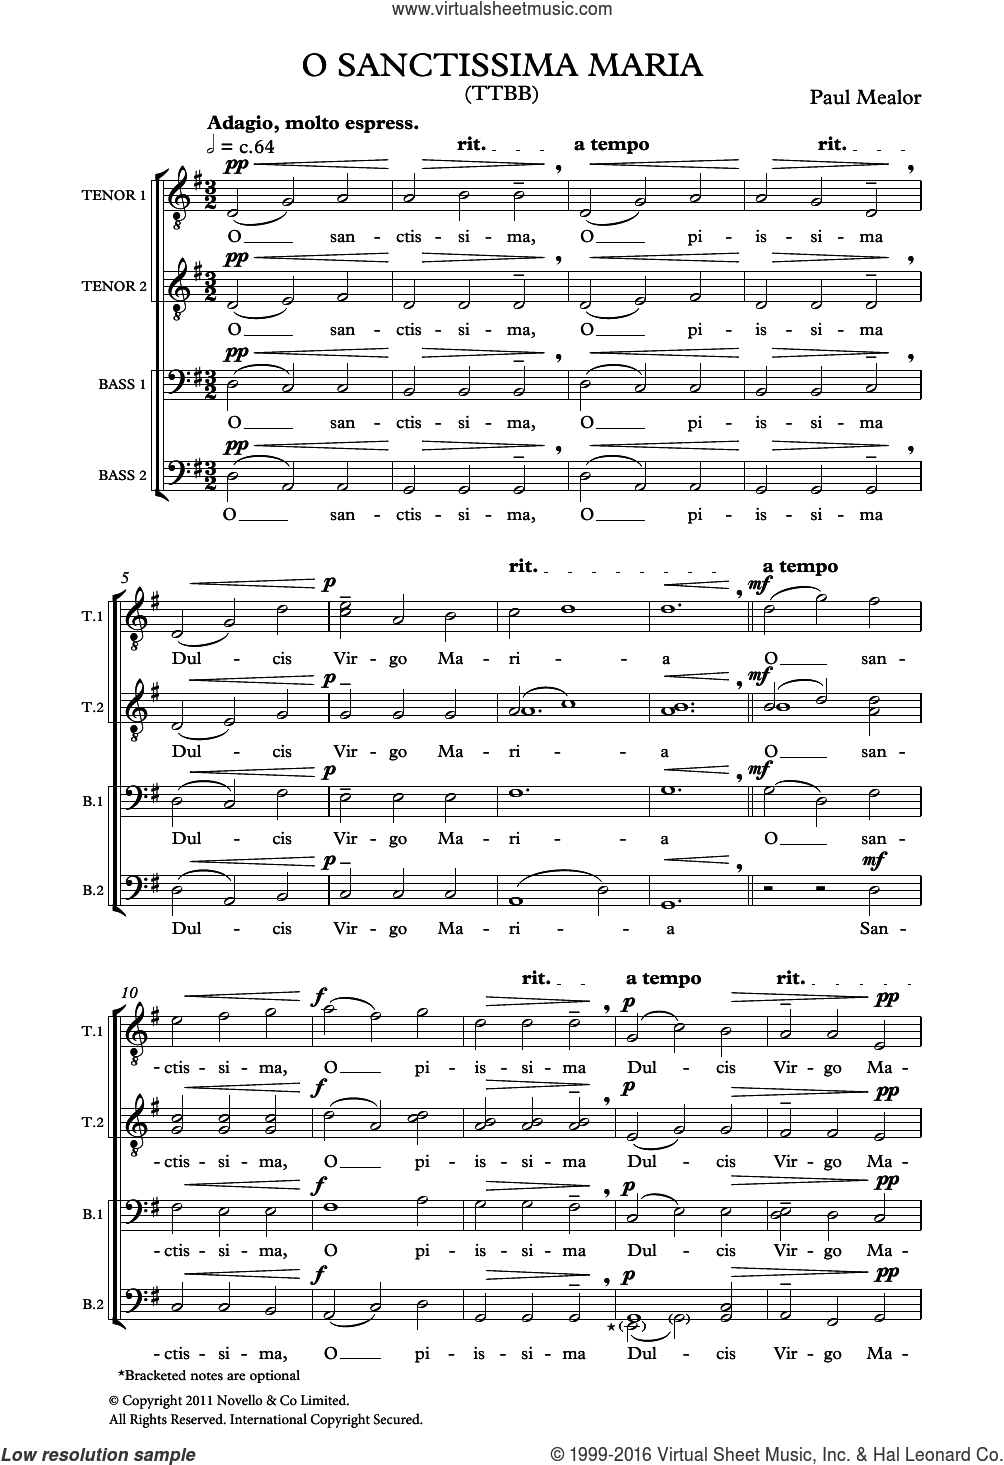 O Sanctissima Maria sheet music for voice, piano or guitar by Paul Mealor. Score Image Preview.